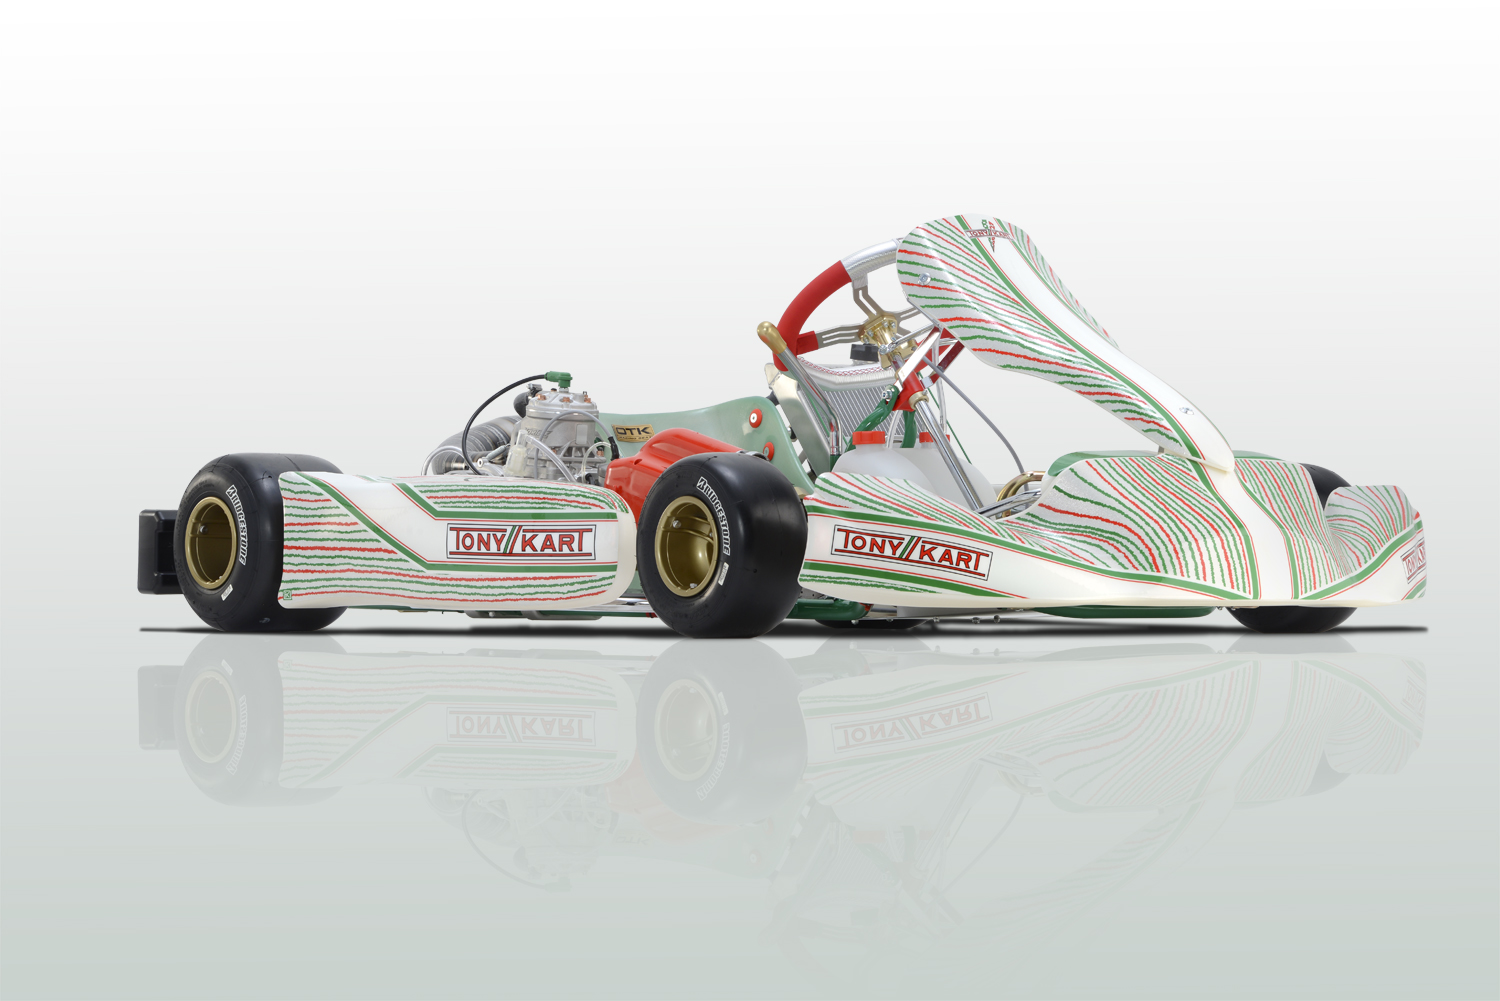 Tony Kart Racer 401 BSS KZ Chassis - Pure Karting